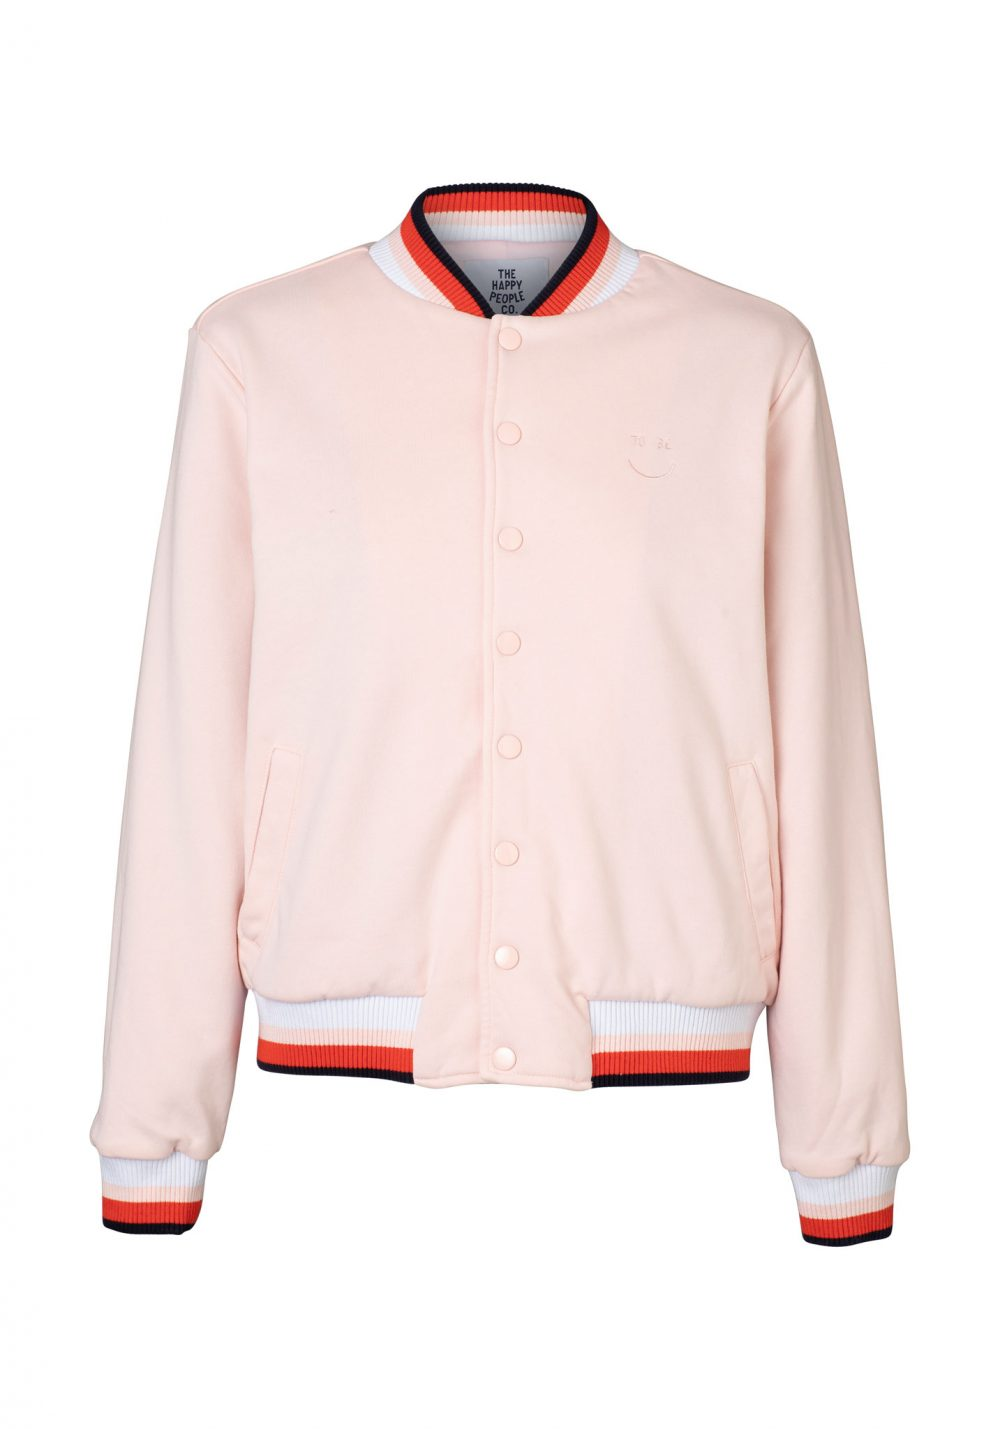 Happy Sweater Jacket Pink